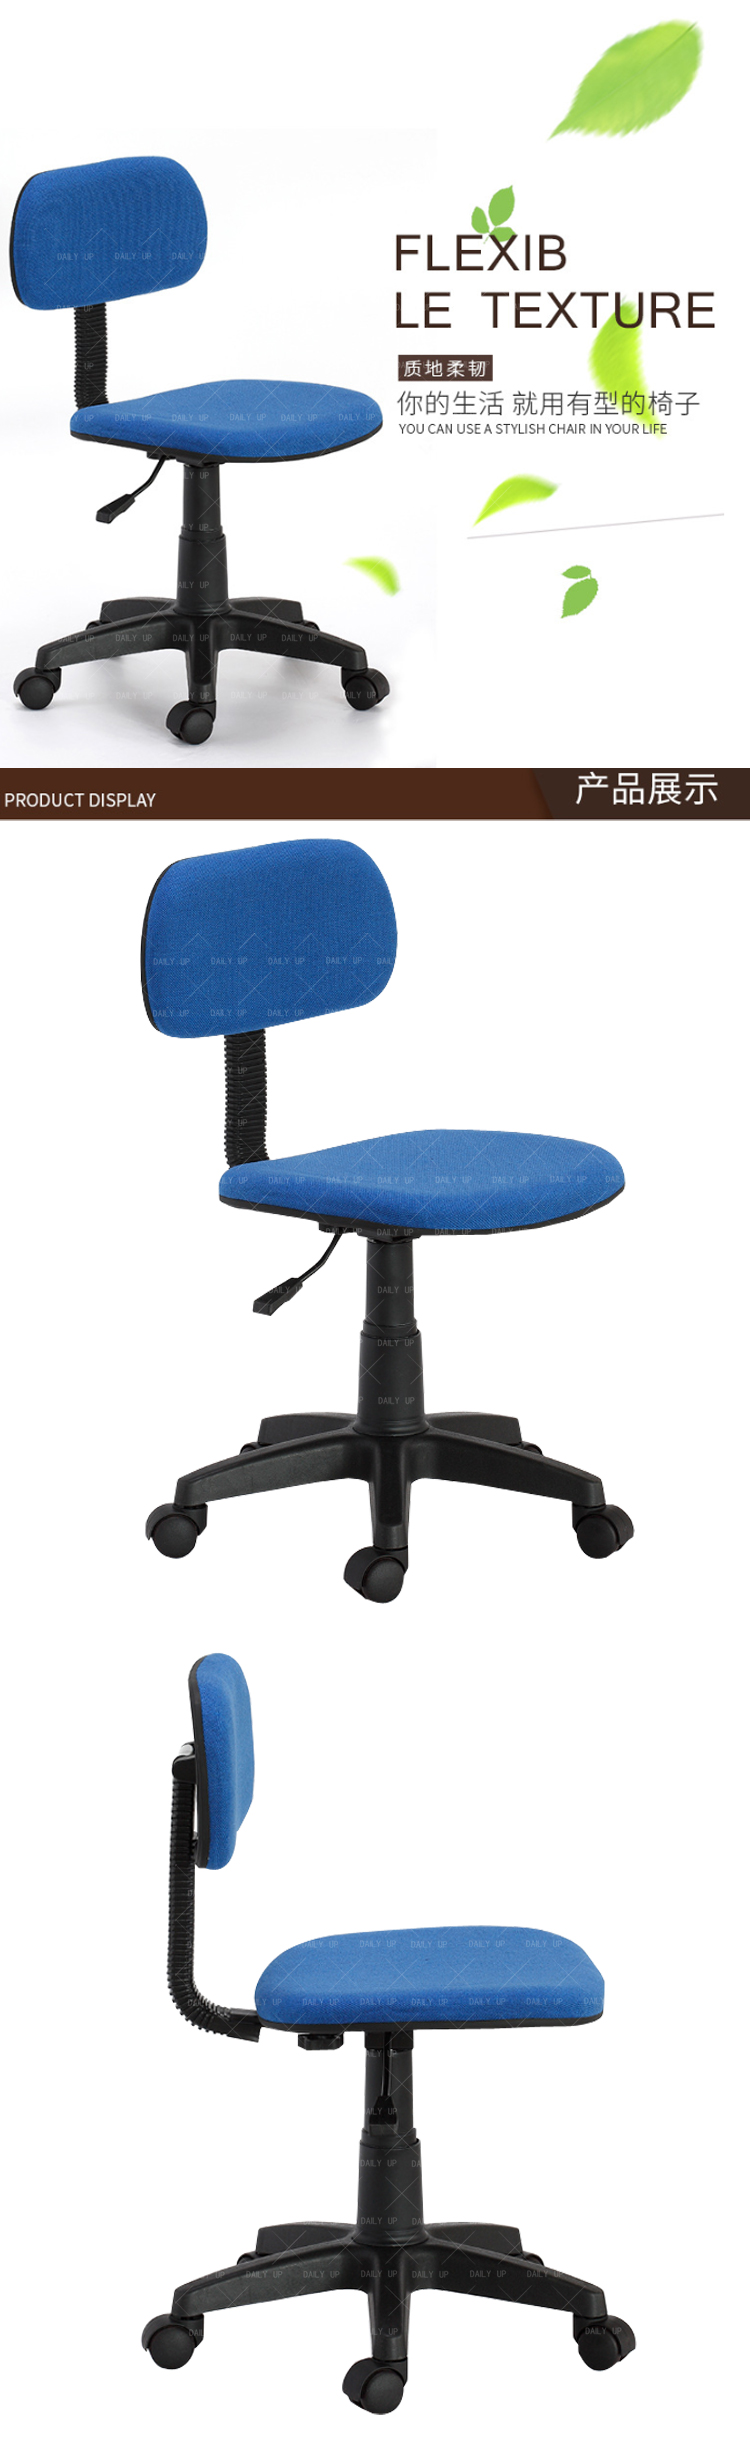 Office Staff Working Chair Dimensions Ergonomic Clerk Task Chair for Worker Fabric Padded Cheap Swivel Typist Chair without Arm